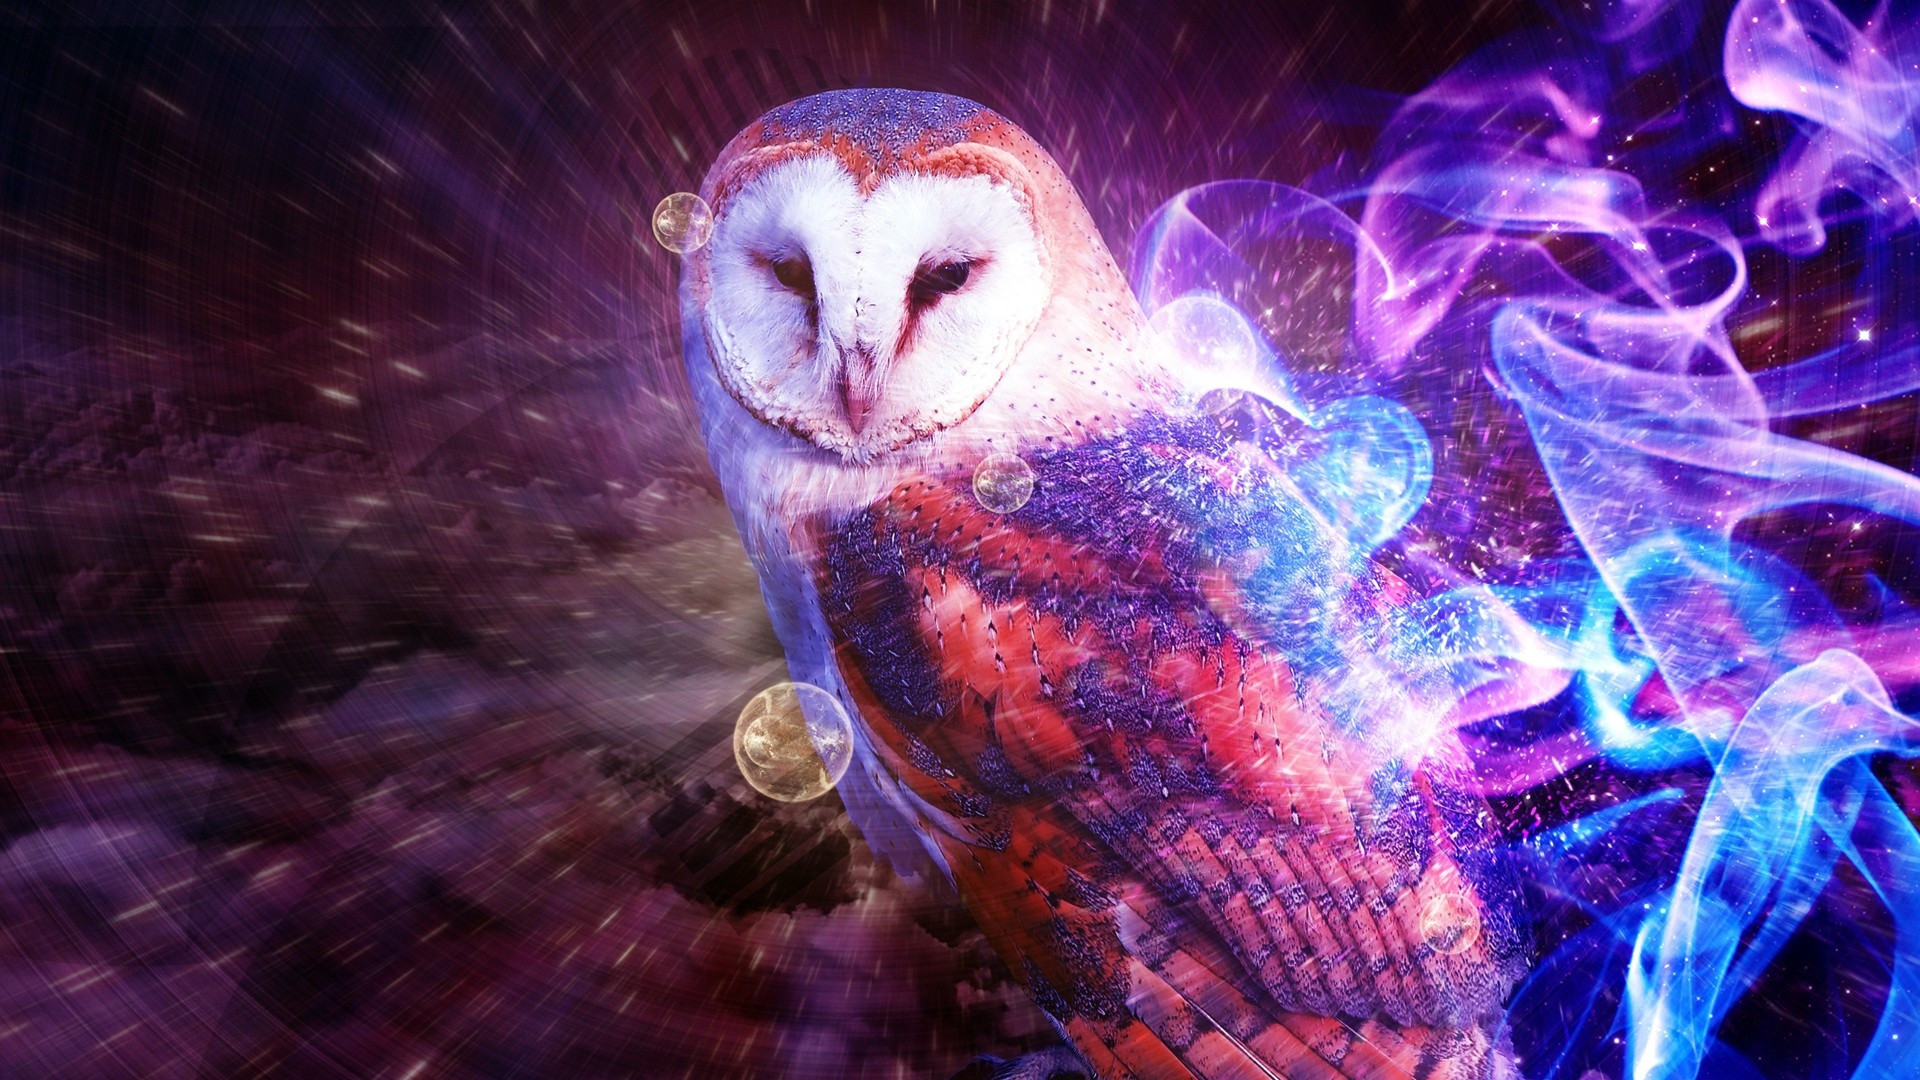 1920x1080 Some trippy owl thing.